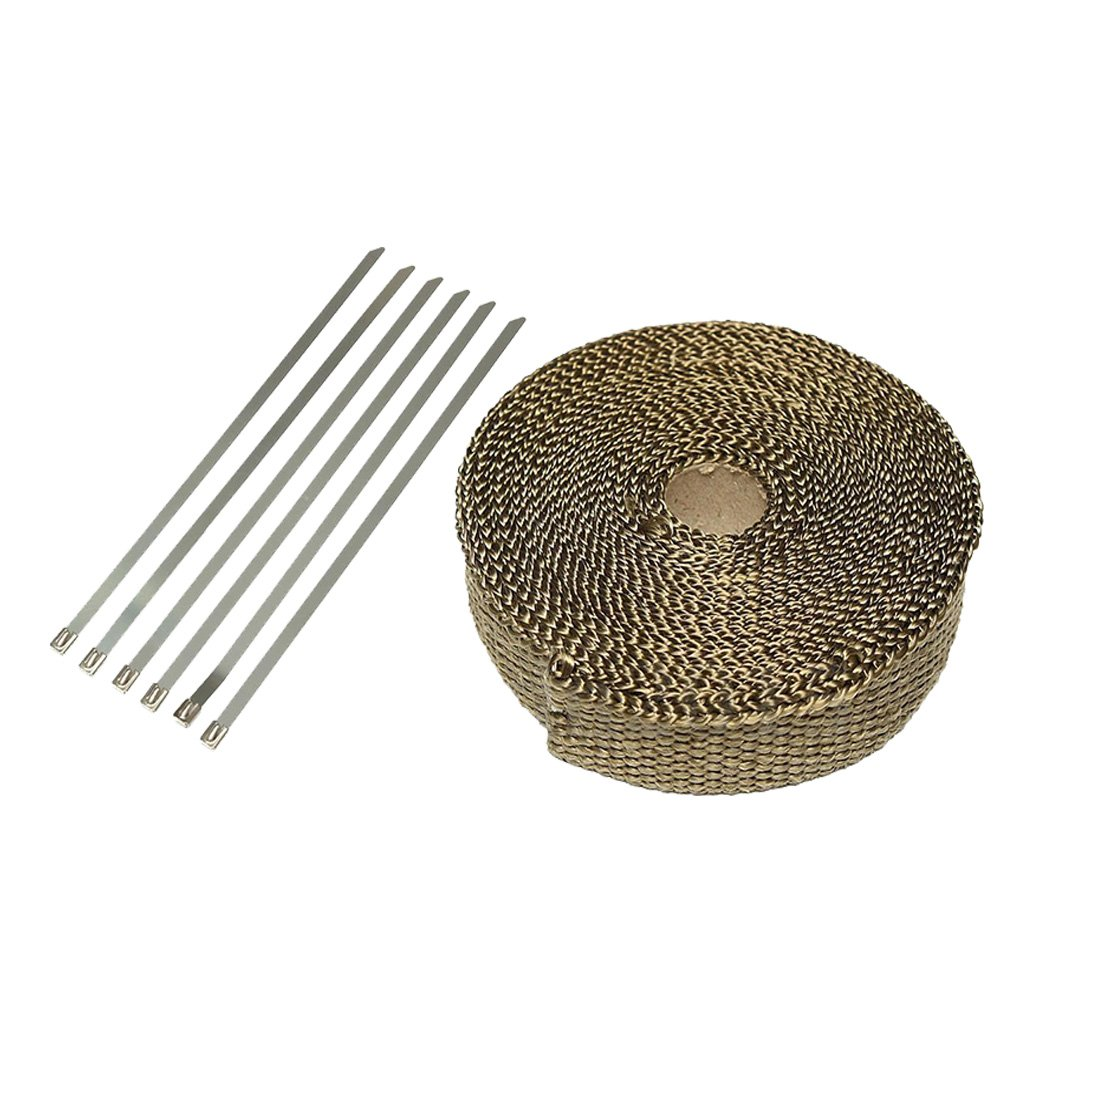 Titanium Exhaust Header Heat Wrap with Stainless Cable Ties , 2.5CM x 7.5M EAGLESTIME